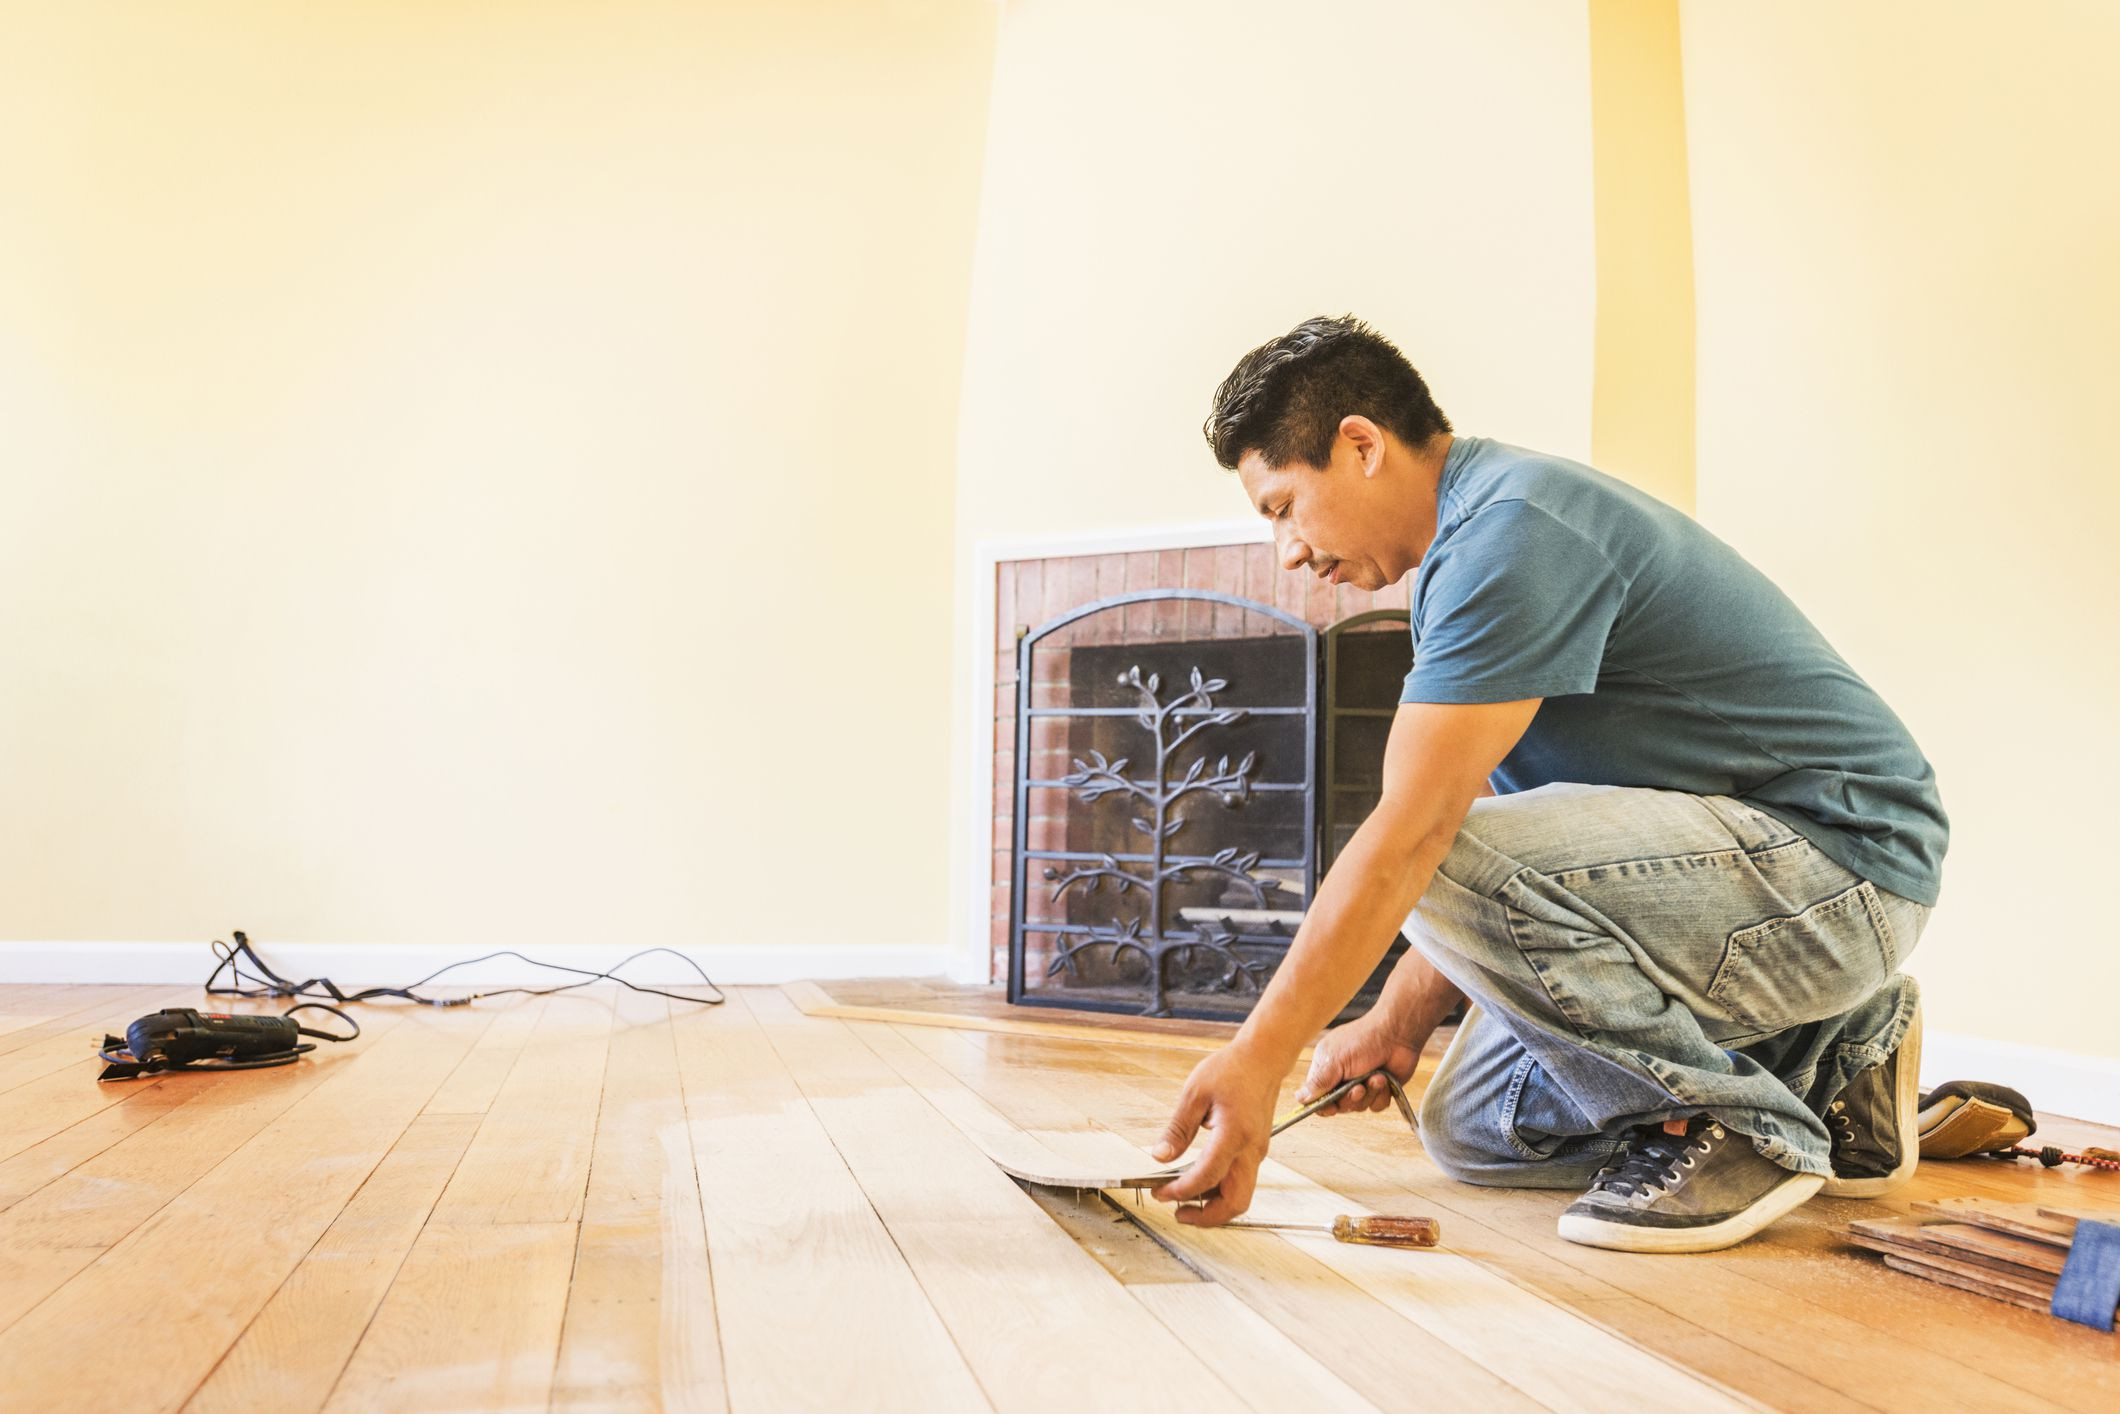 wide plank grey hardwood flooring of hardwood installer how to hire and what to expect regarding installing wood flooring 592016327 57af51a23df78cd39cfa08d9